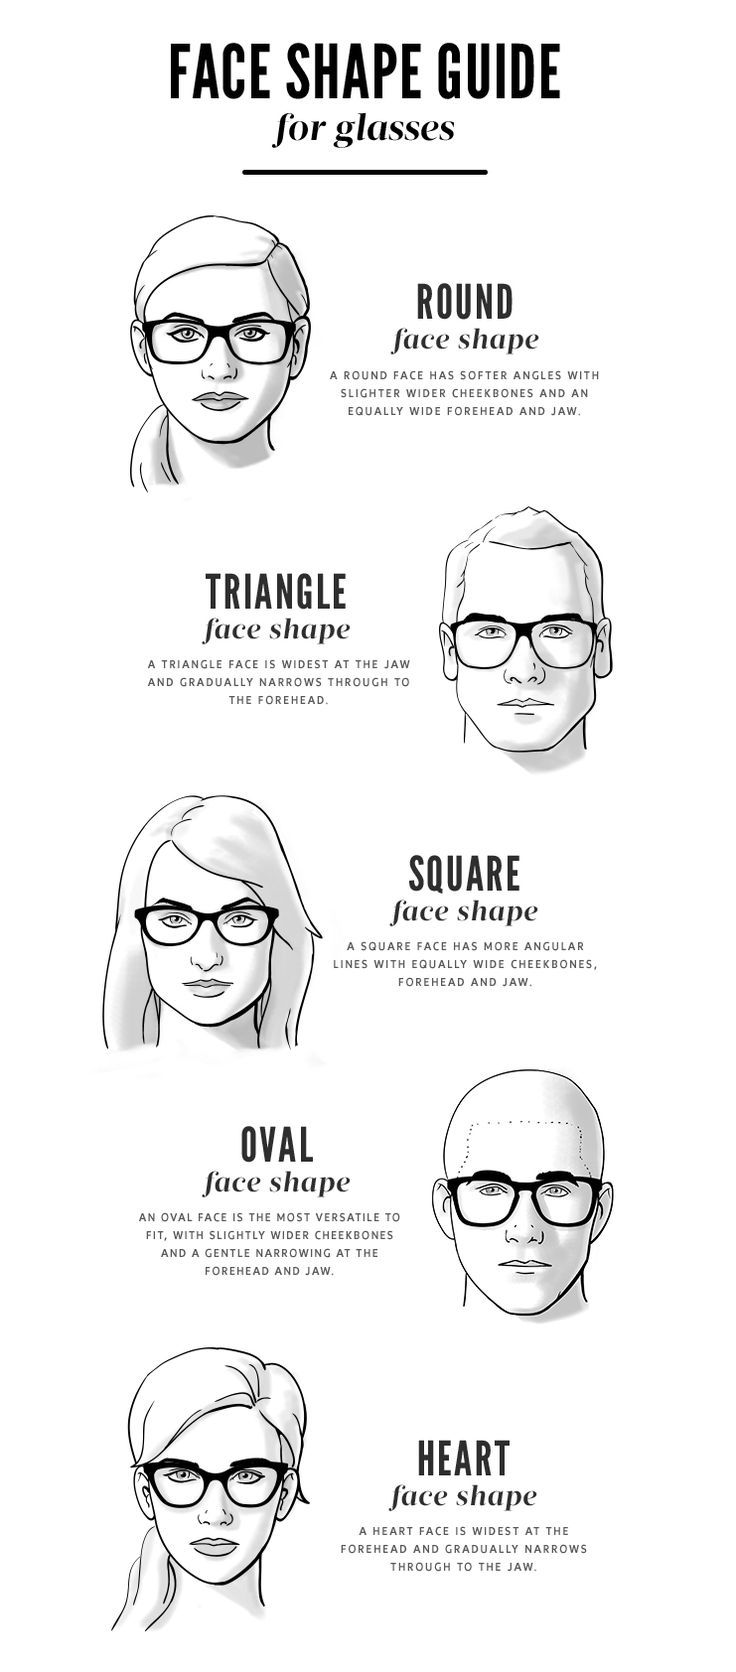 Eyeglasses Frame According To Face Shape : Face Shape Guide for Glasses Oakley sunglasses, For ...